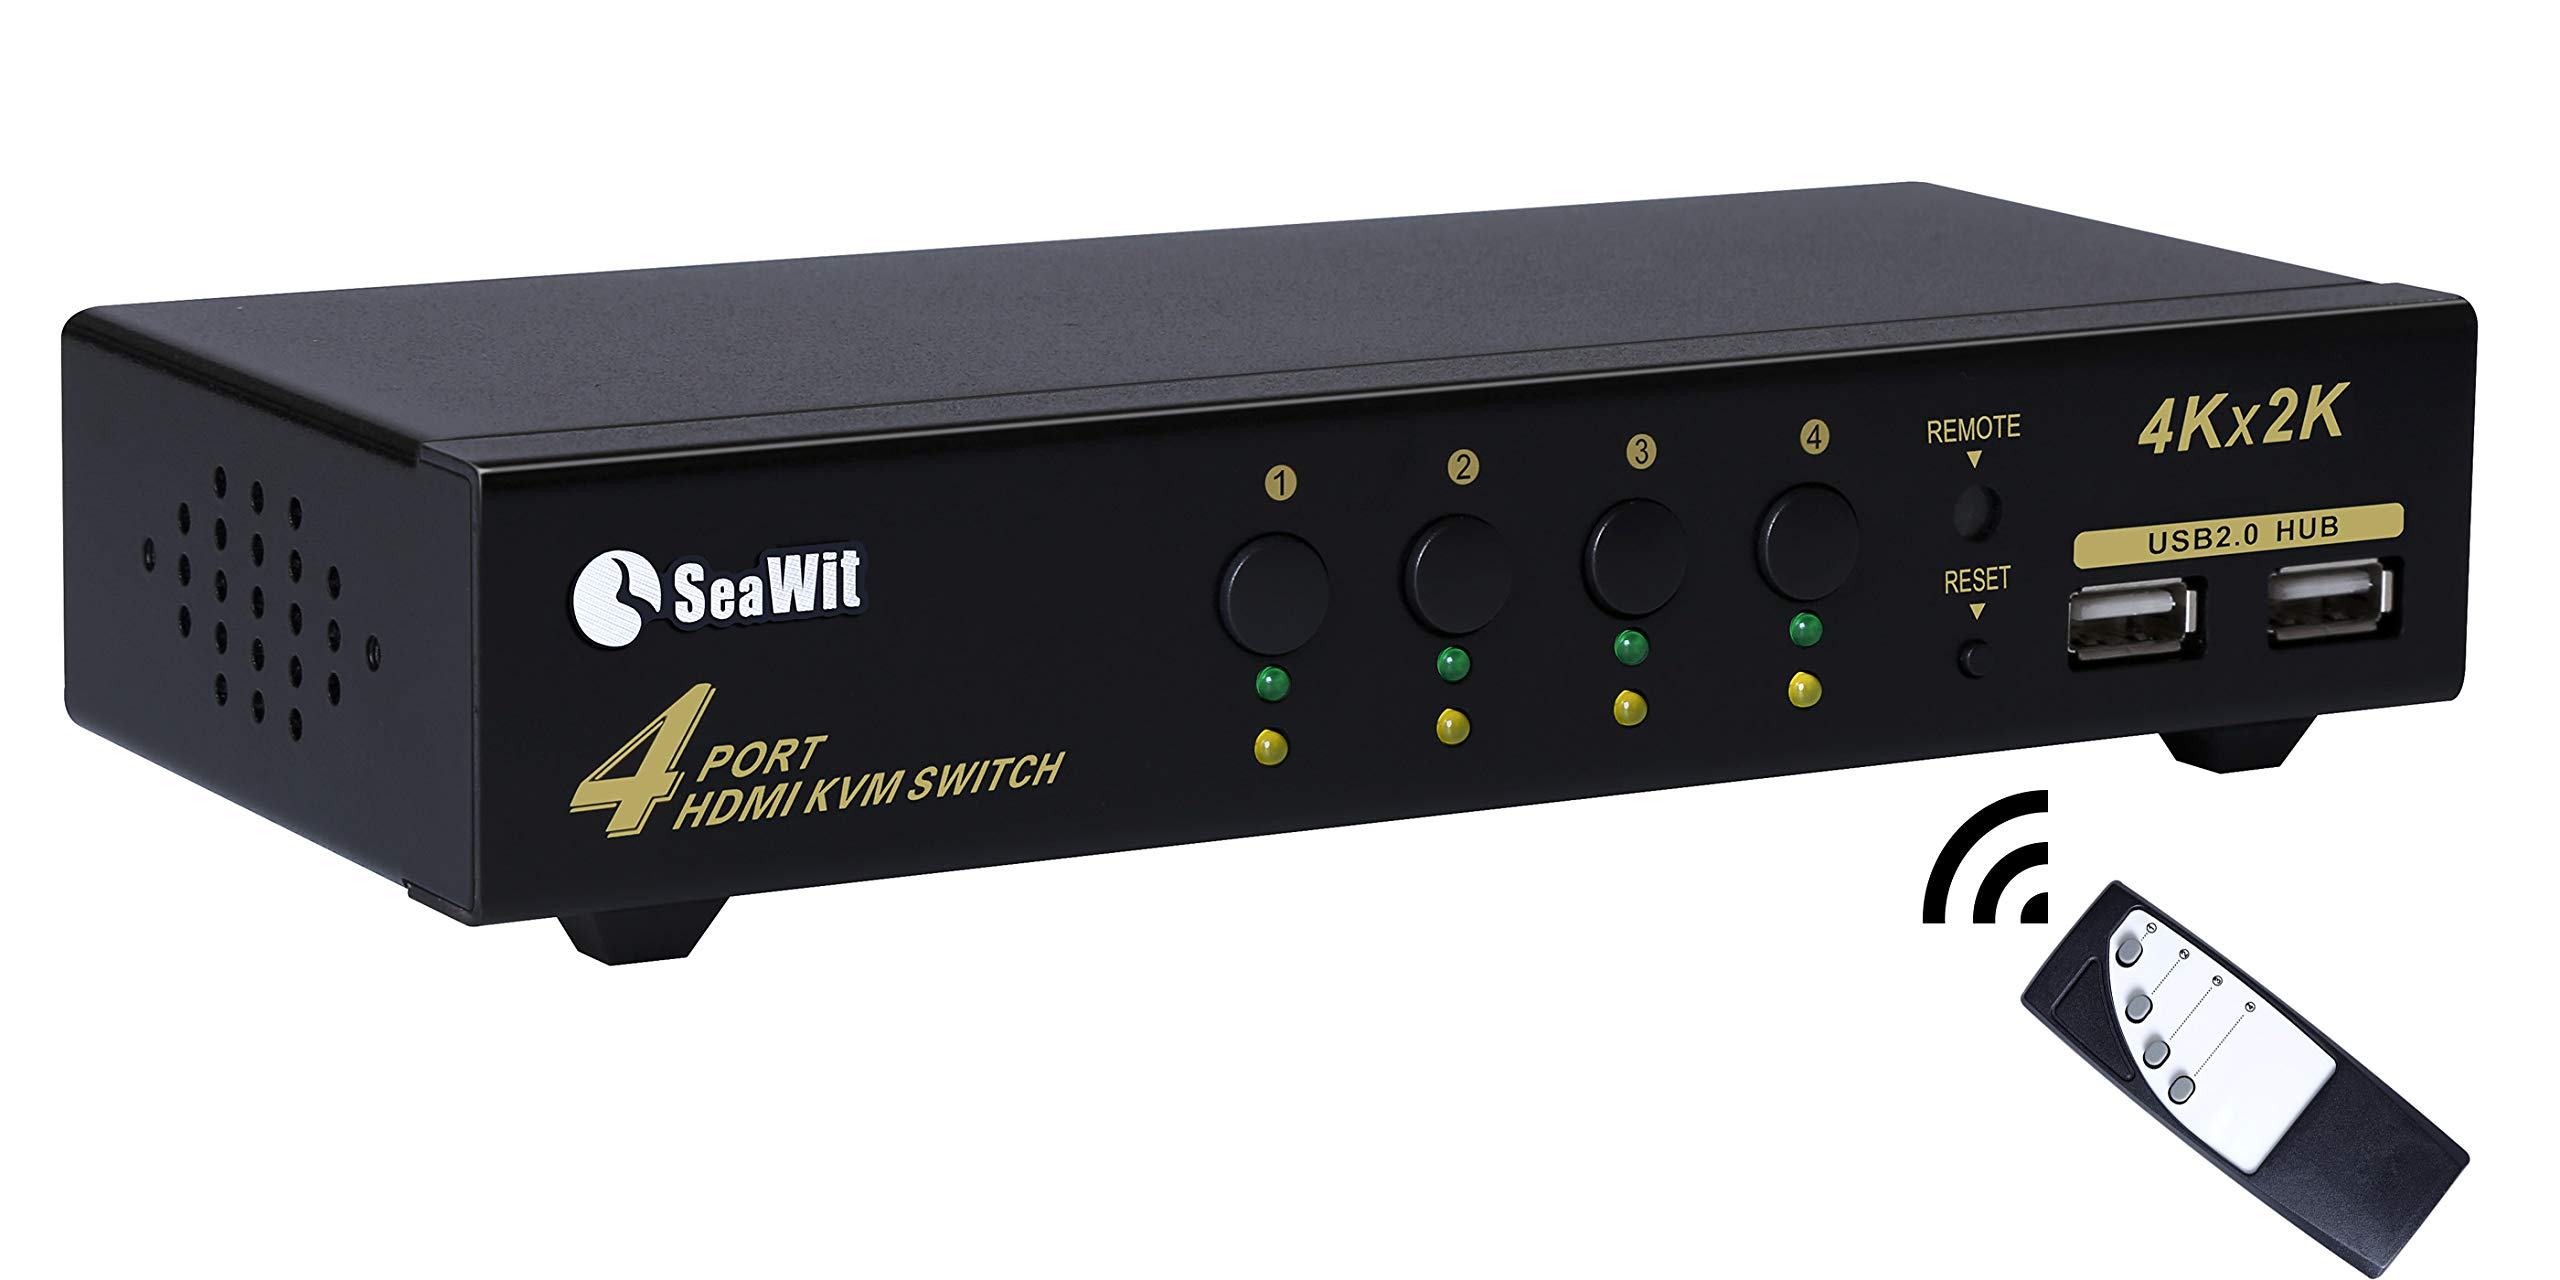 Sea Wit 4 Port HDMI KVM Switch 4K with Remote Control by Sea Wit